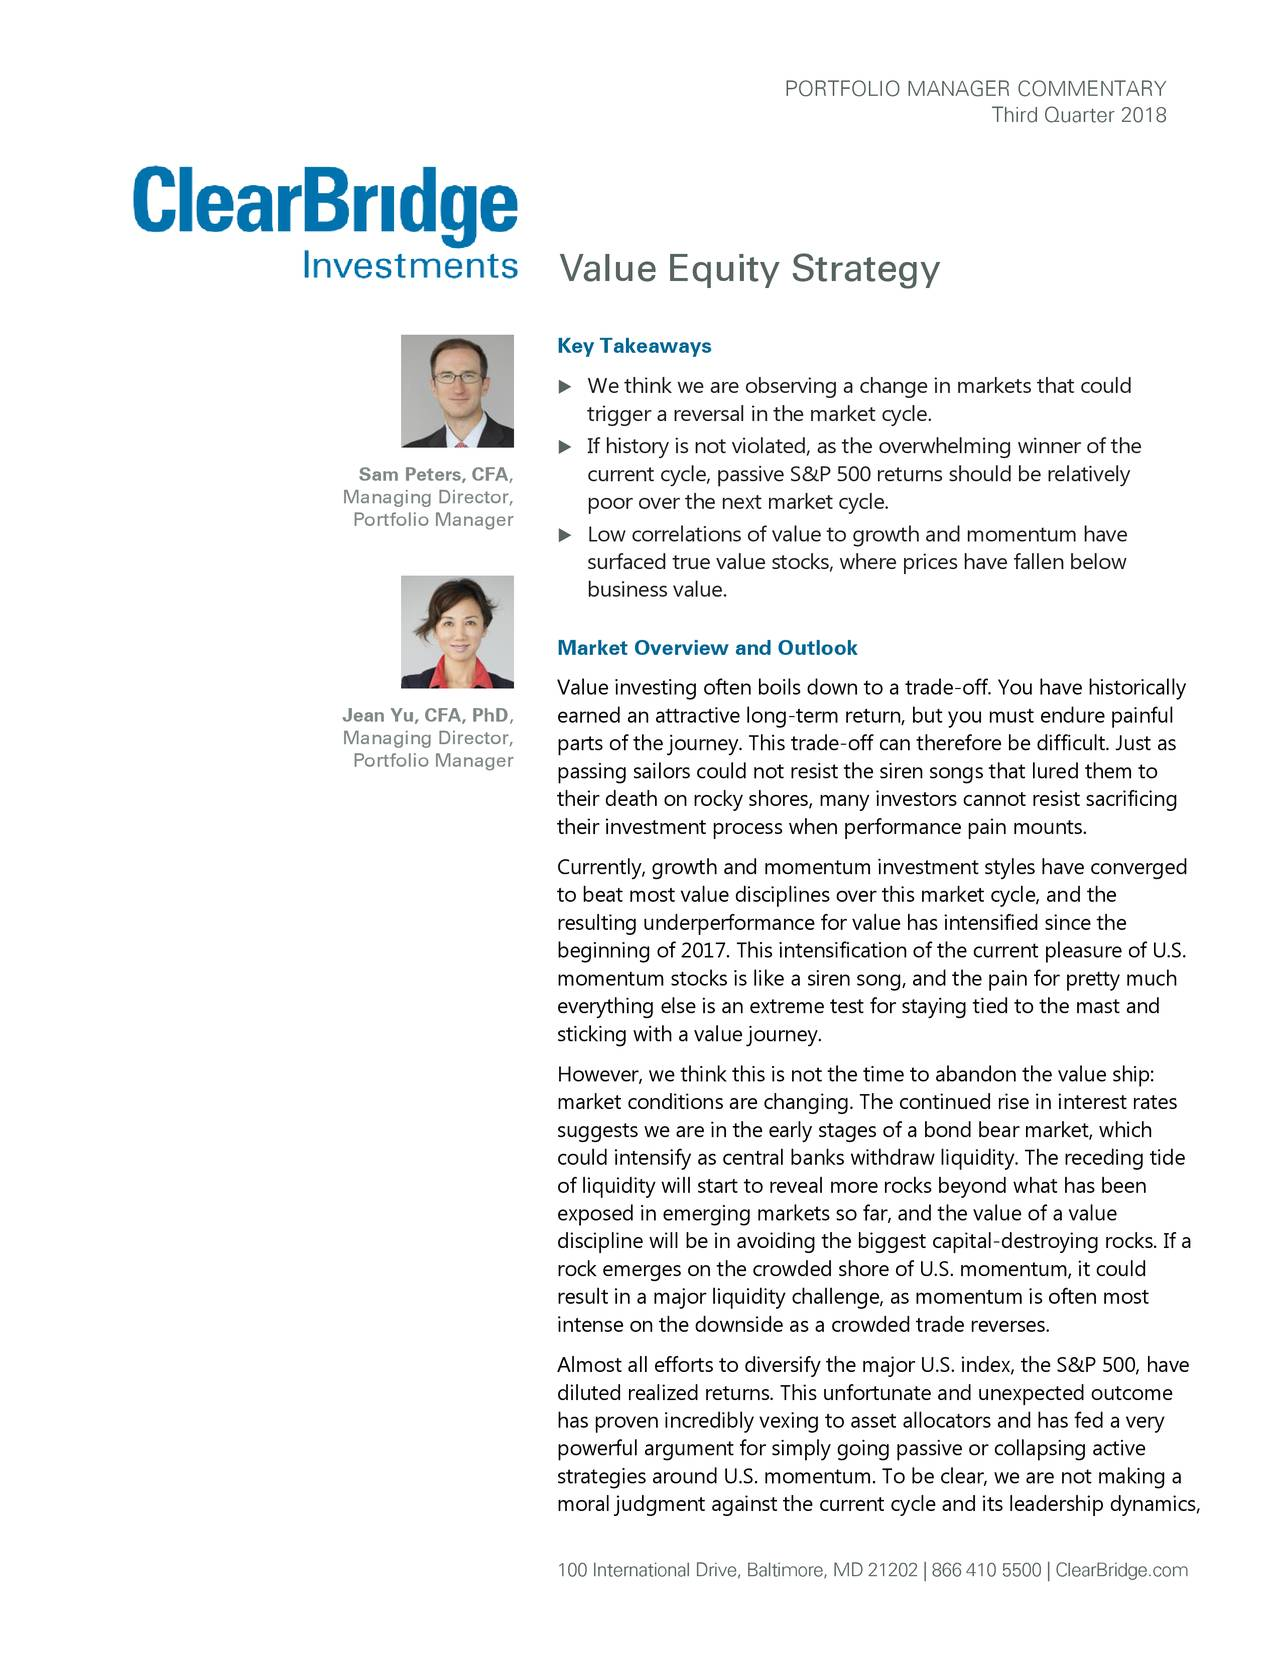 Third Quarter 2018 Value Equity Strategy Key Takeaways  We think we are observing a change in markets that could trigger a reversal in the market cycle.  If history is not violated, as the overwhelming winner of the Sam Peters, CFA, current cycle, passive S&P 500 returns should be relatively Managing Director, poor over the next market cycle. Portfolio Manager  Low correlations of value to growth and momentum have surfaced true value stocks, where prices have fallen below business value. Market Overview and Outlook Value investing often boils down to a trade-off. You have historically Jean Yu, CFA, PhD, earned an attractive long-term return, but you must endure painful Managing Director, parts of the journey. This trade-off can therefore be difficult. Just as Portfolio Manager passing sailors could not resist the siren songs that lured them to their death on rocky shores, many investors cannot resist sacrificing their investment process when performance pain mounts. Currently, growth and momentum investment styles have converged to beat most value disciplines over this market cycle, and the resulting underperformance for value has intensified since the beginning of 2017. This intensification of the current pleasure of U.S. momentum stocks is like a siren song, and the pain for pretty much everything else is an extreme test for staying tied to the mast and sticking with a value journey. However, we think this is not the time to abandon the value ship: market conditions are changing. The continued rise in interest rates suggests we are in the early stages of a bond bear market, which could intensify as central banks withdraw liquidity. The receding tide of liquidity will start to reveal more rocks beyond what has been exposed in emerging markets so far, and the value of a value discipline will be in avoiding the biggest capital-destroying rocks. If a rock emerges on the crowded shore of U.S. momentum, it could result in a major liquidity challenge, as momentum is often most intense on the downside as a crowded trade reverses. Almost all efforts to diversify the major U.S. index, the S&P 500, have diluted realized returns. This unfortunate and unexpected outcome has proven incredibly vexing to asset allocators and has fed a very powerful argument for simply going passive or collapsing active strategies around U.S. momentum. To be clear, we are not making a moral judgment against the current cycle and its leadership dynamics, 100 International Drive, Baltimore, MD 21202 | 866 410 5500 | ClearBridge.com